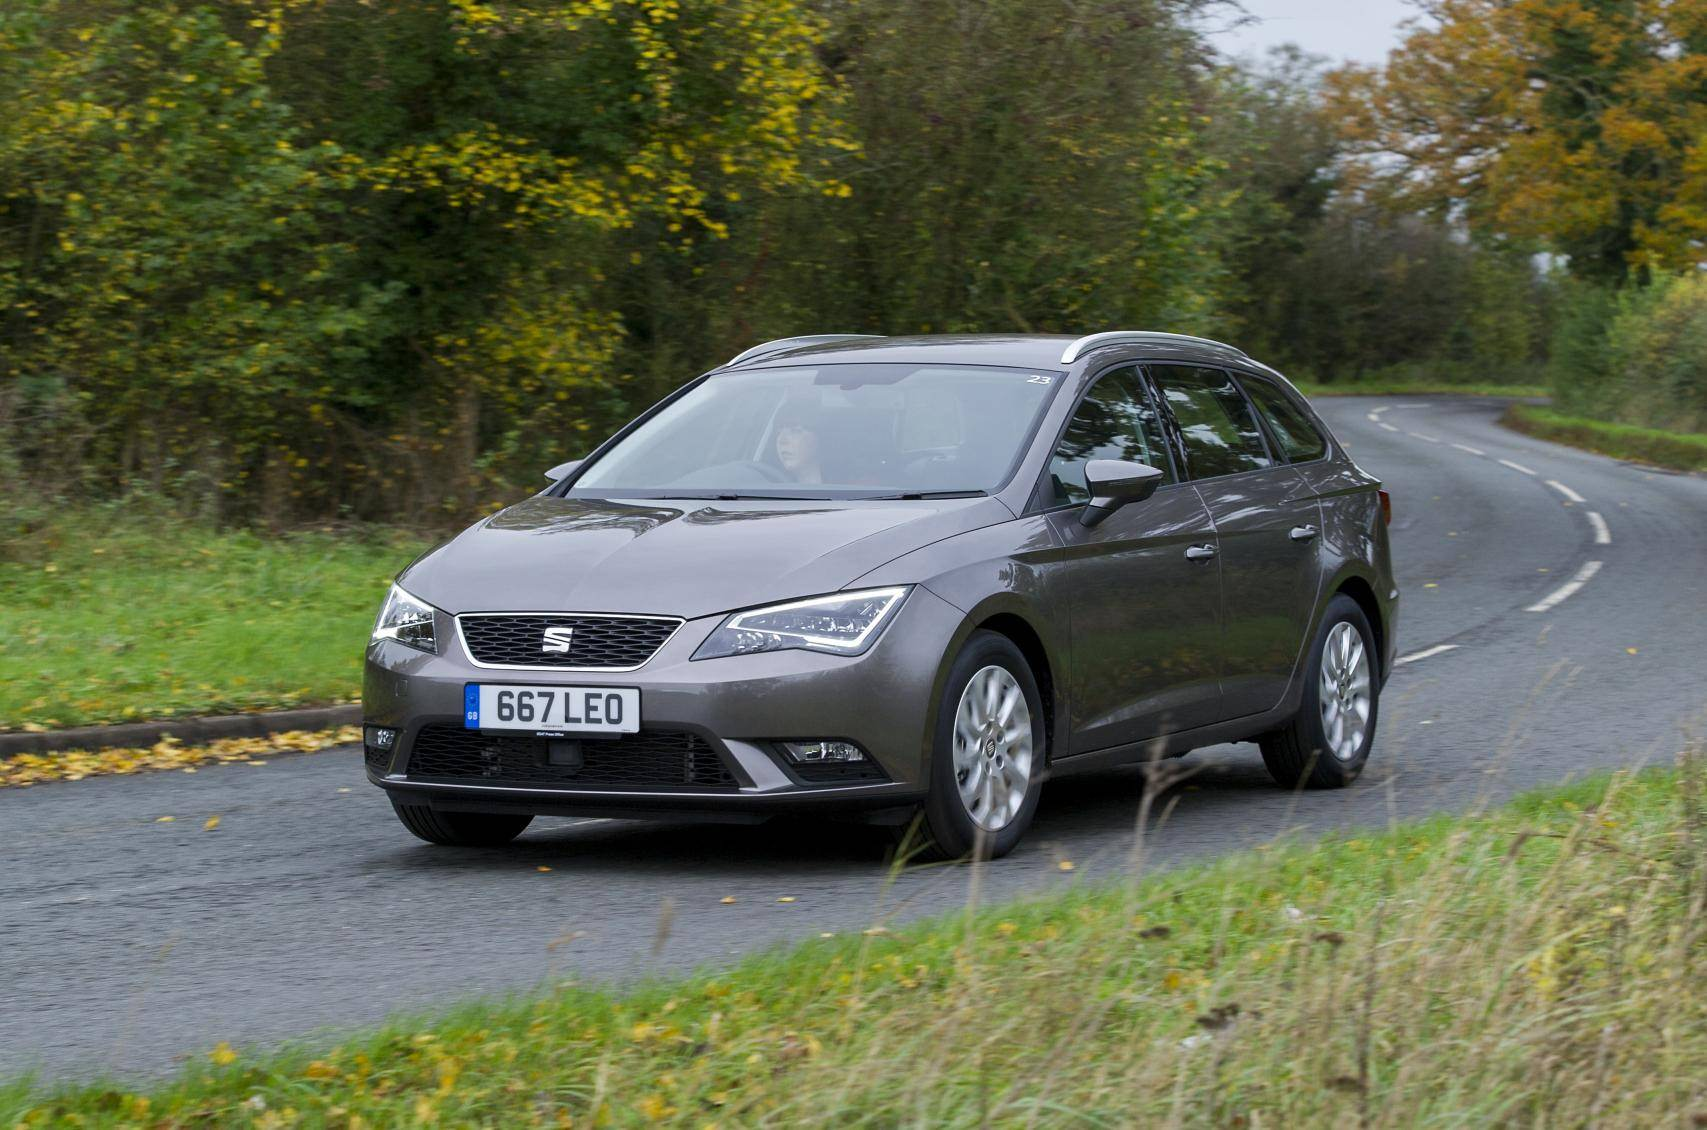 Grey Seat Leon driving on countryside road